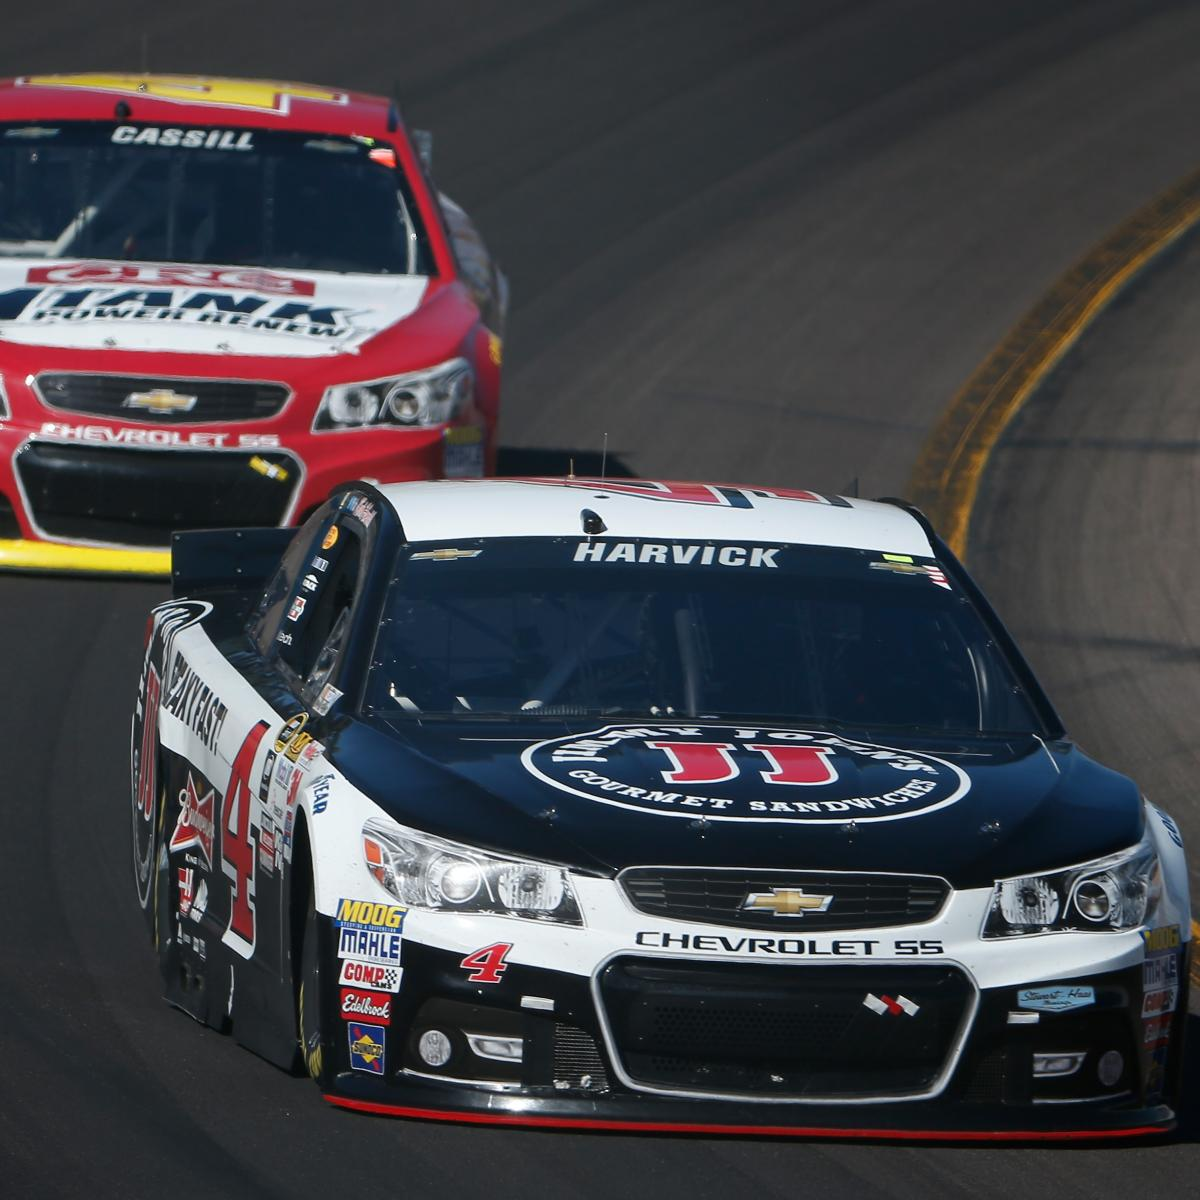 Top 10 Sprint Cup : Sprint cup chase nascar standings and schedule after